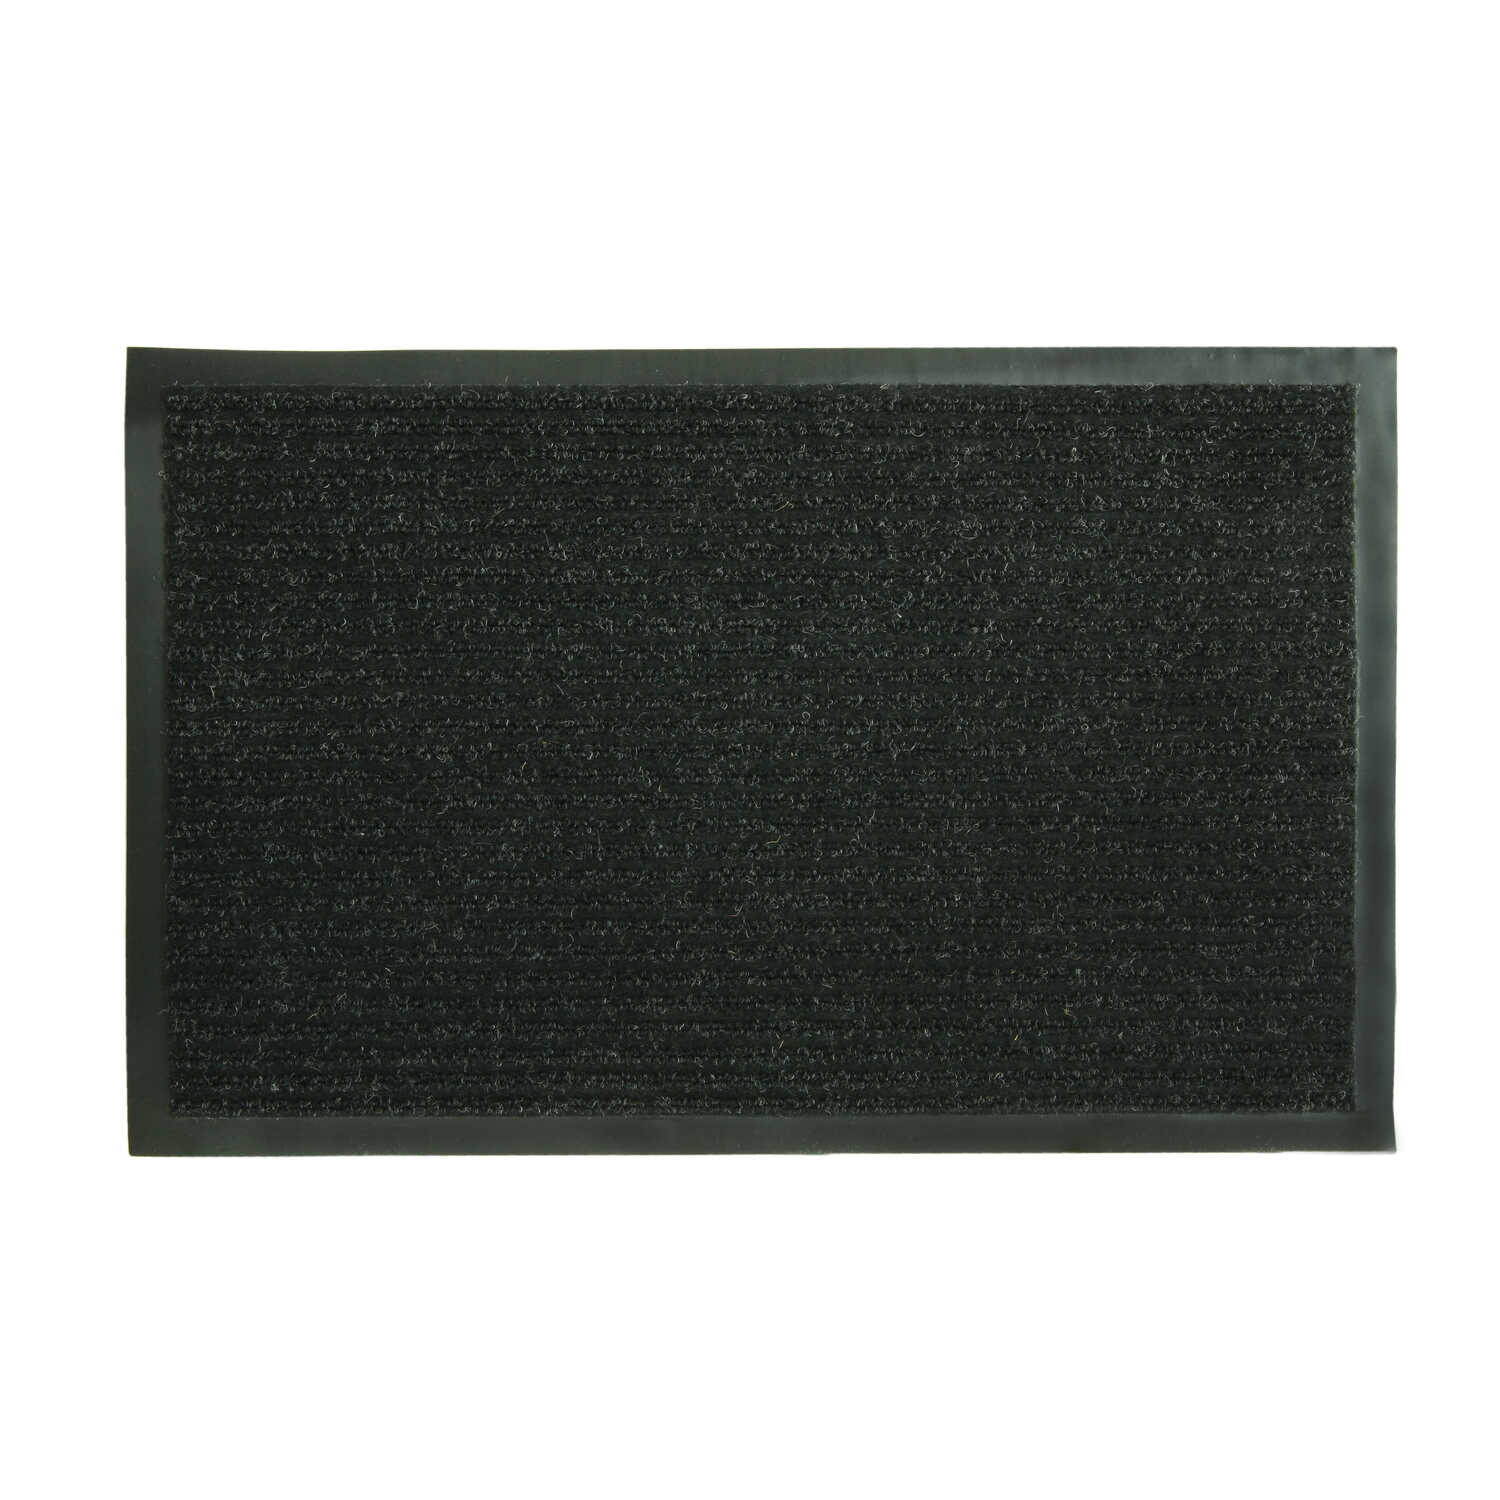 Bacova  Charcoal  Polyester Jacquard  Nonslip Door Mat  28 in. L x 17-1/2 in. W